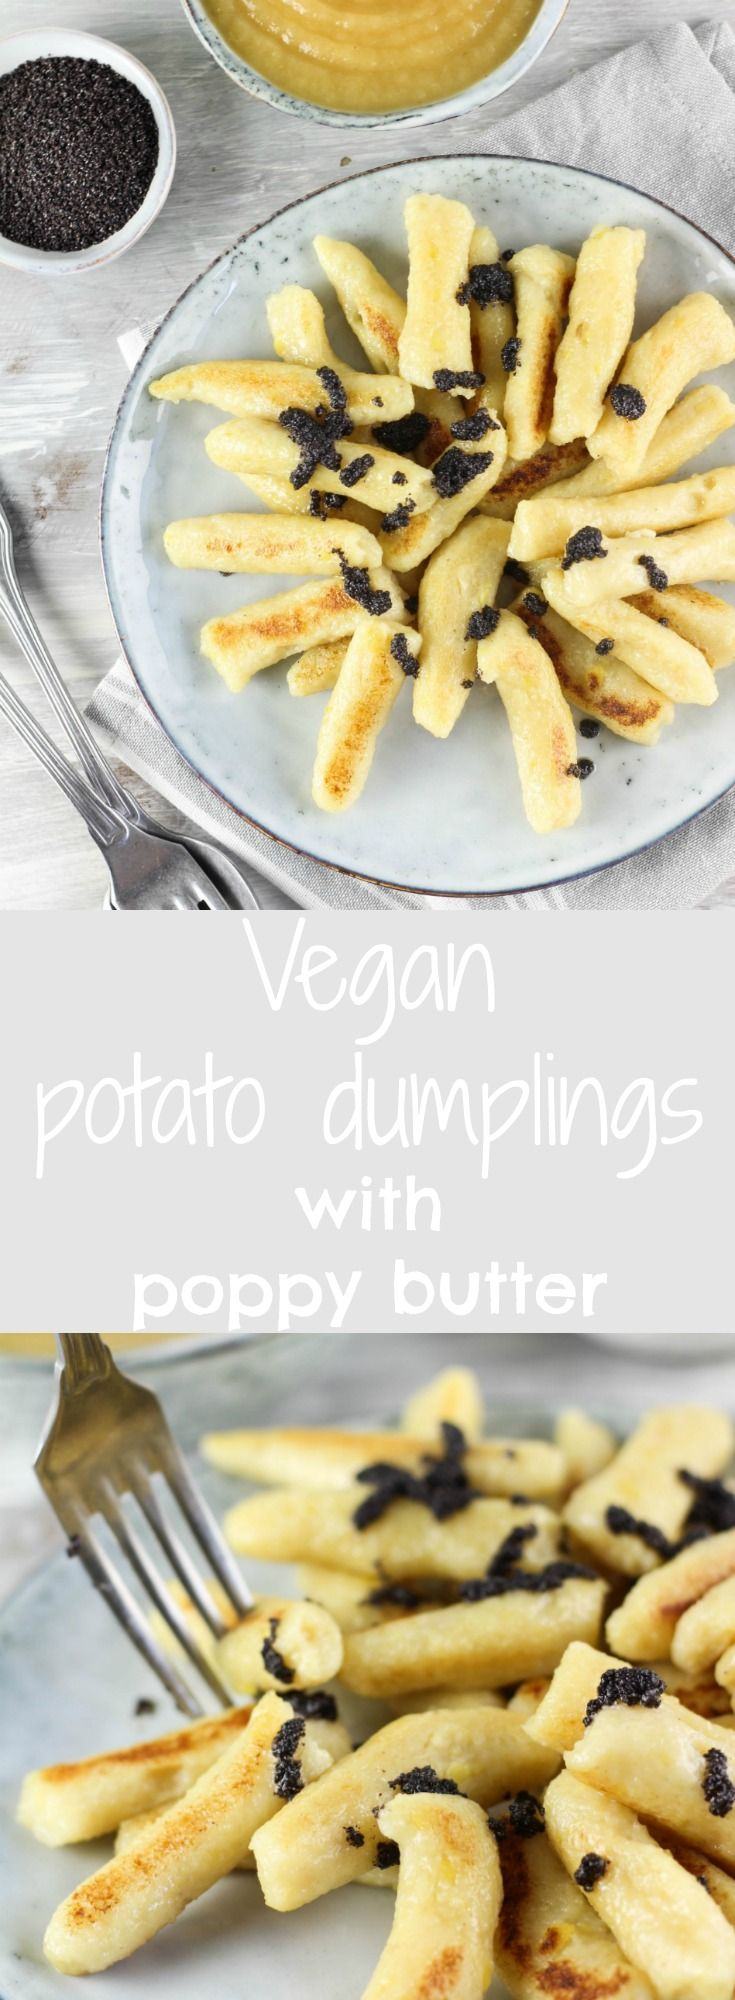 VEGAN POTATO DUMPLINGS WITH POPPY BUTTER (Schupfnudeln)